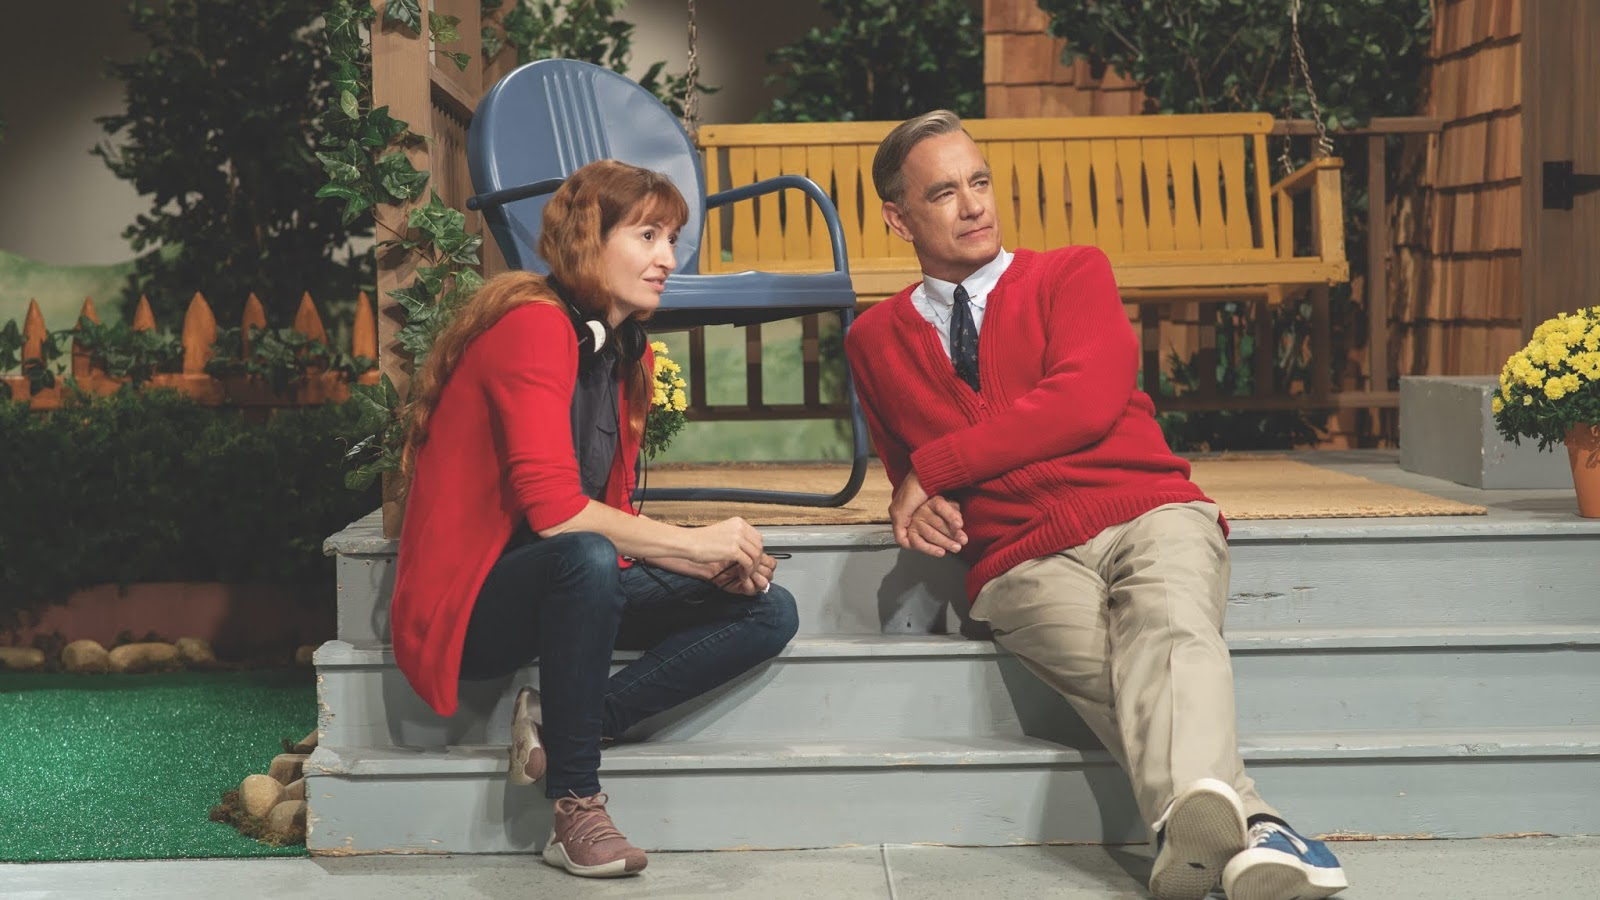 A Beautiful Day in the Neighborhood - Marielle Heller and Tom Hanks